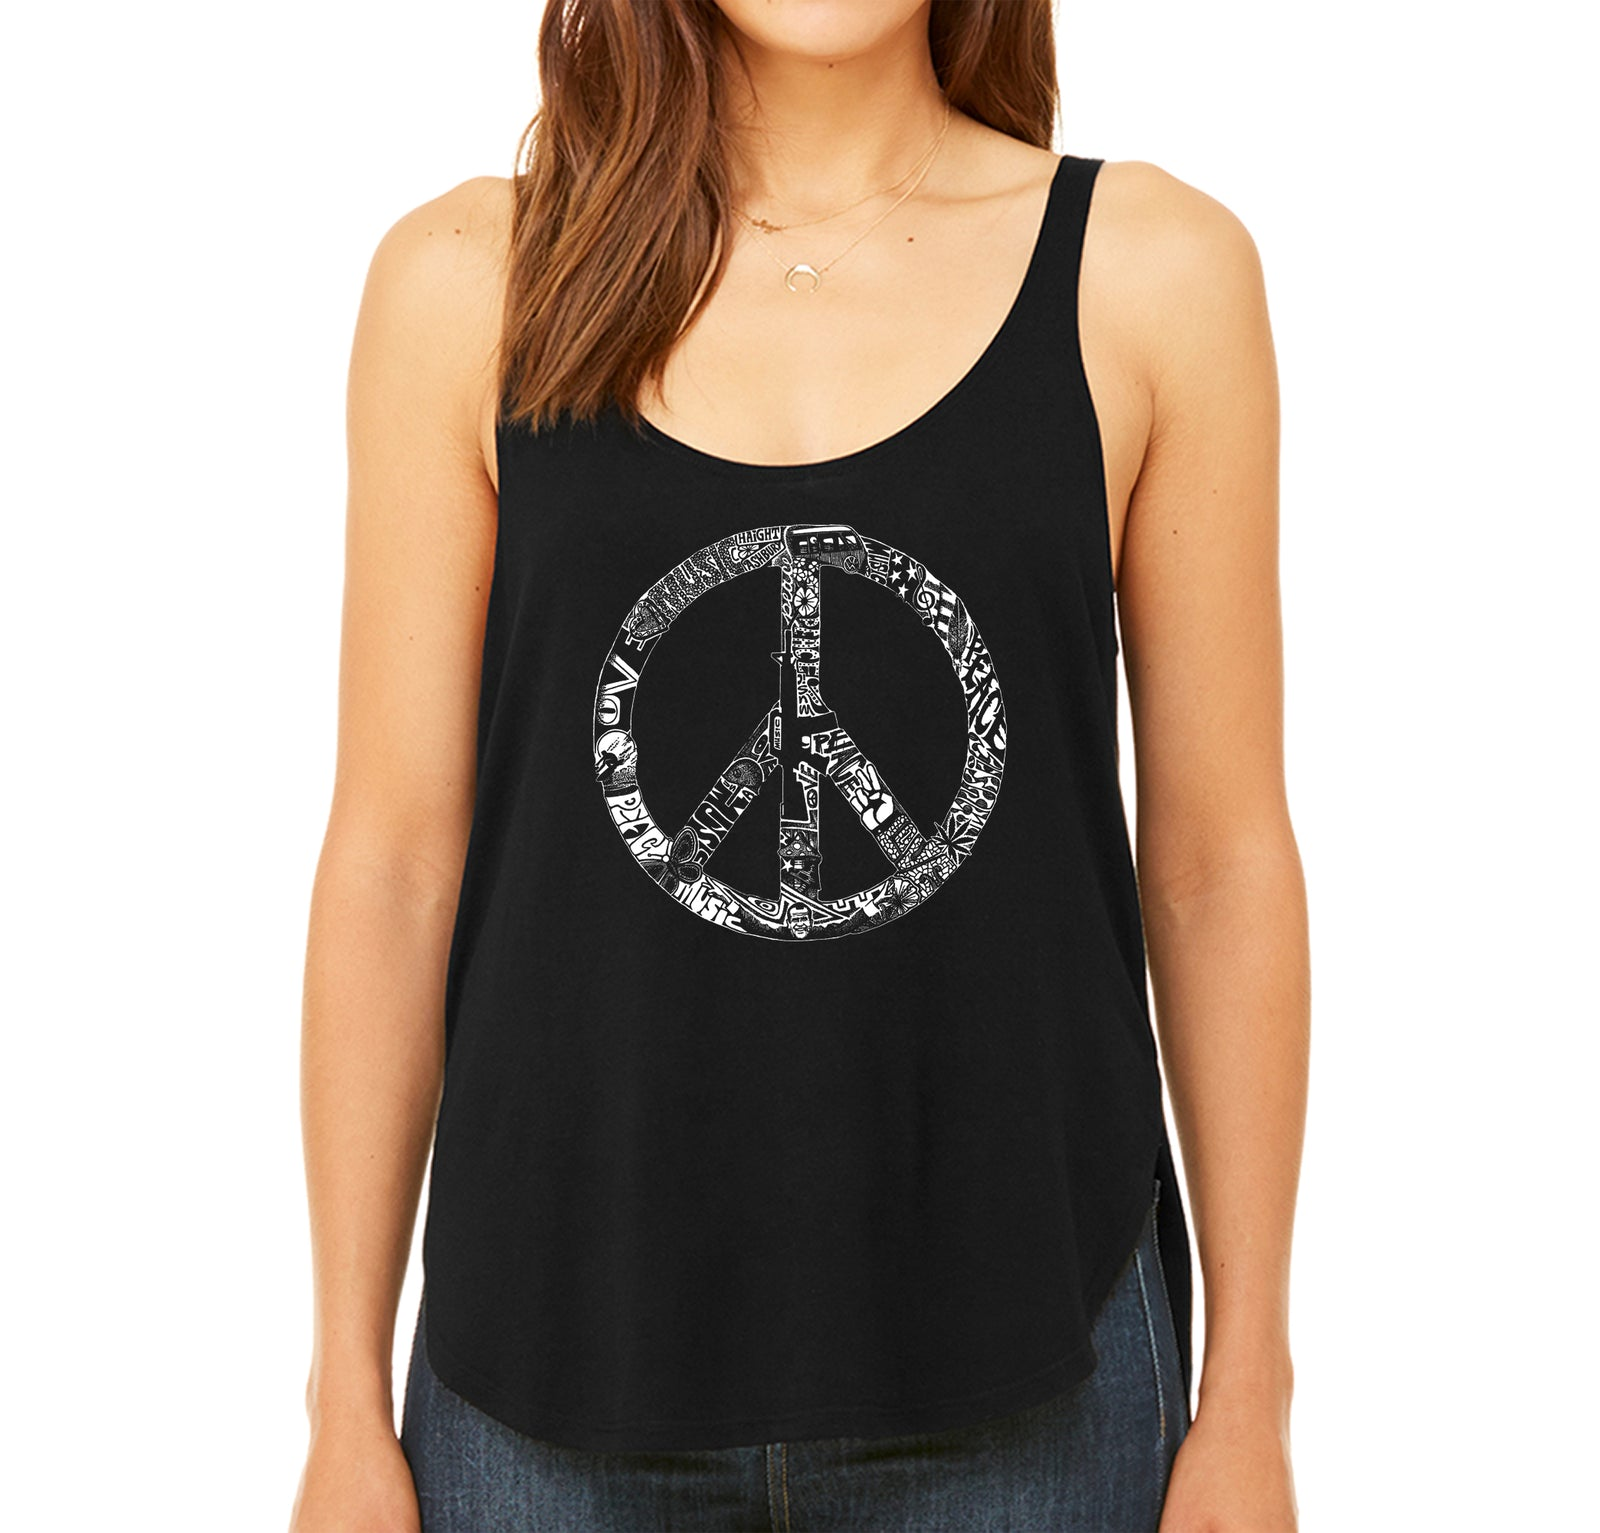 Women's Premium Word Art Flowy Tank Top - PEACE, LOVE, & MUSIC